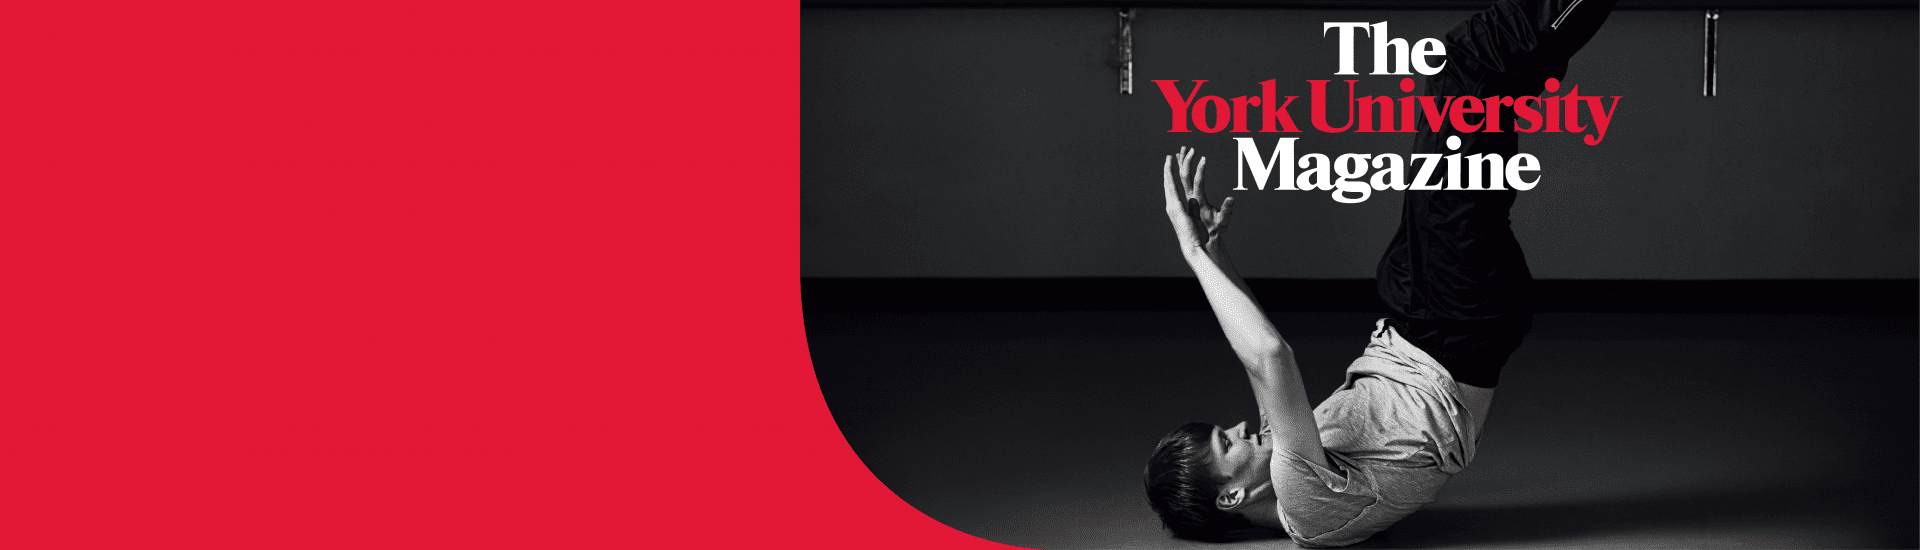 The new winter edition of the York University Magazine is here and covers everything from dance to infectious disease